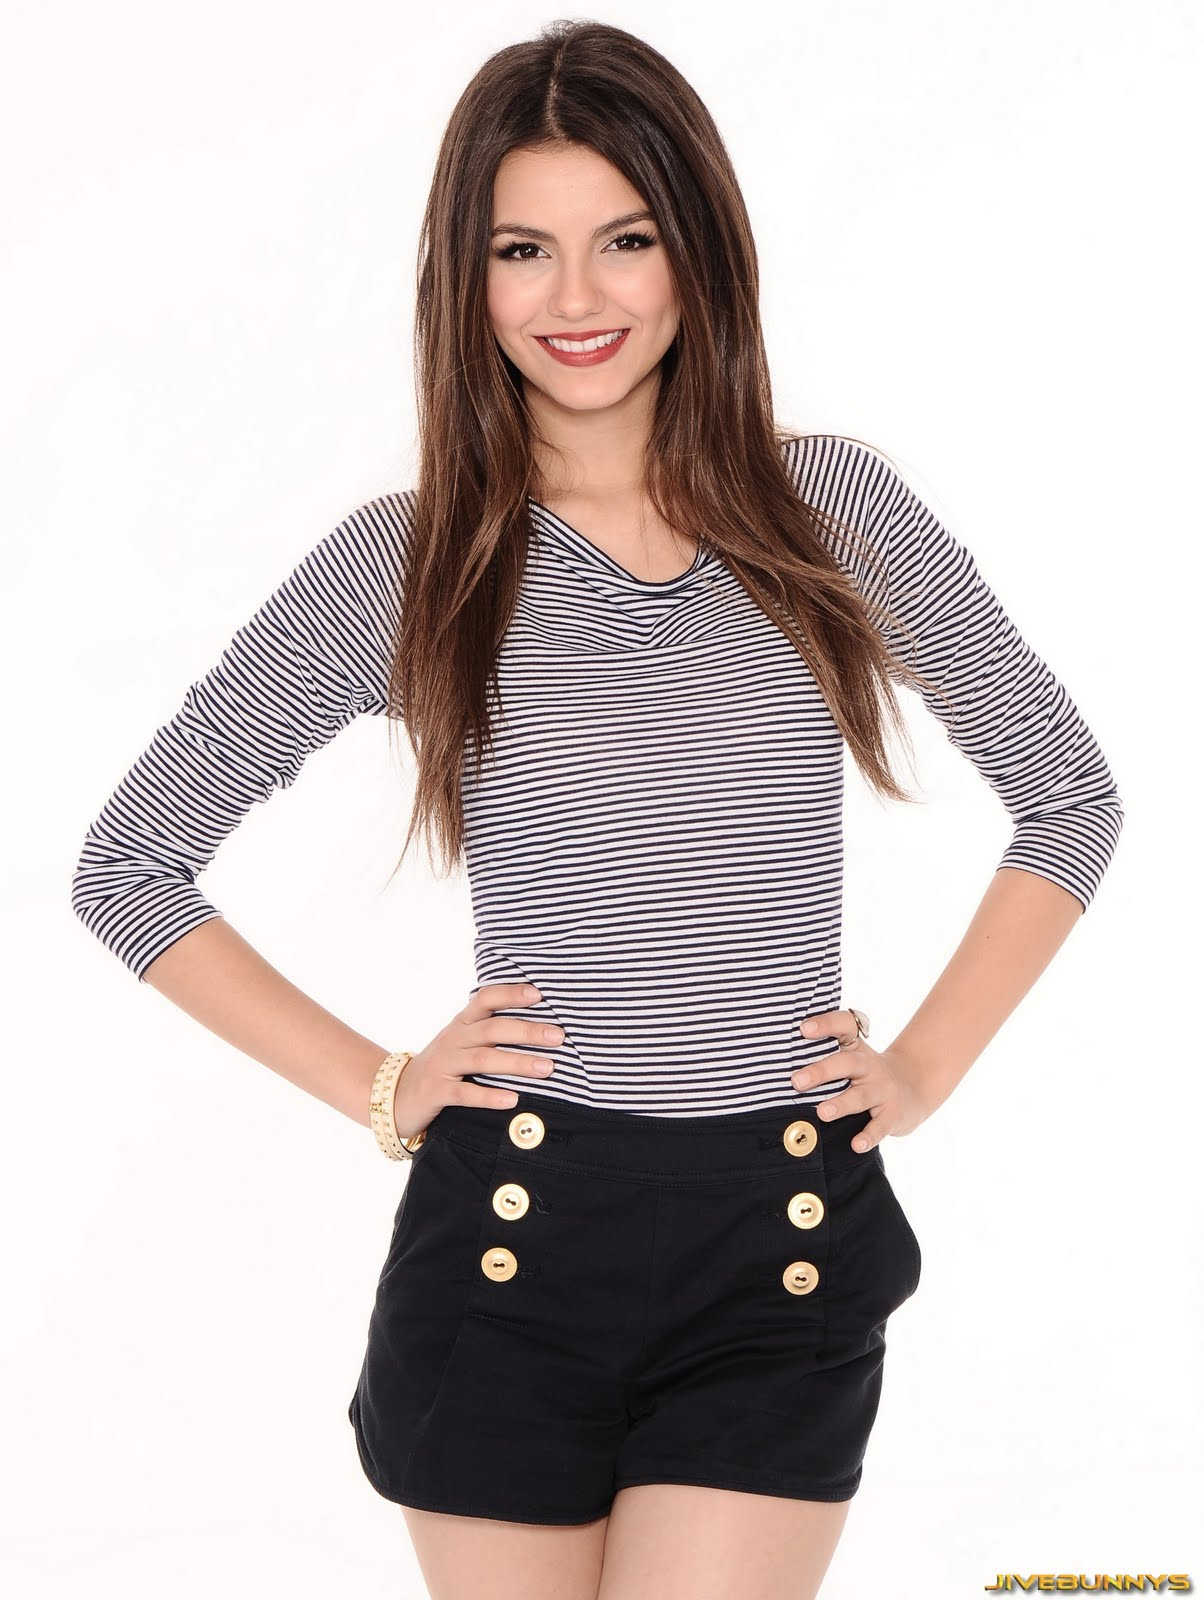 Victoria Justice Colombia Photoshoot